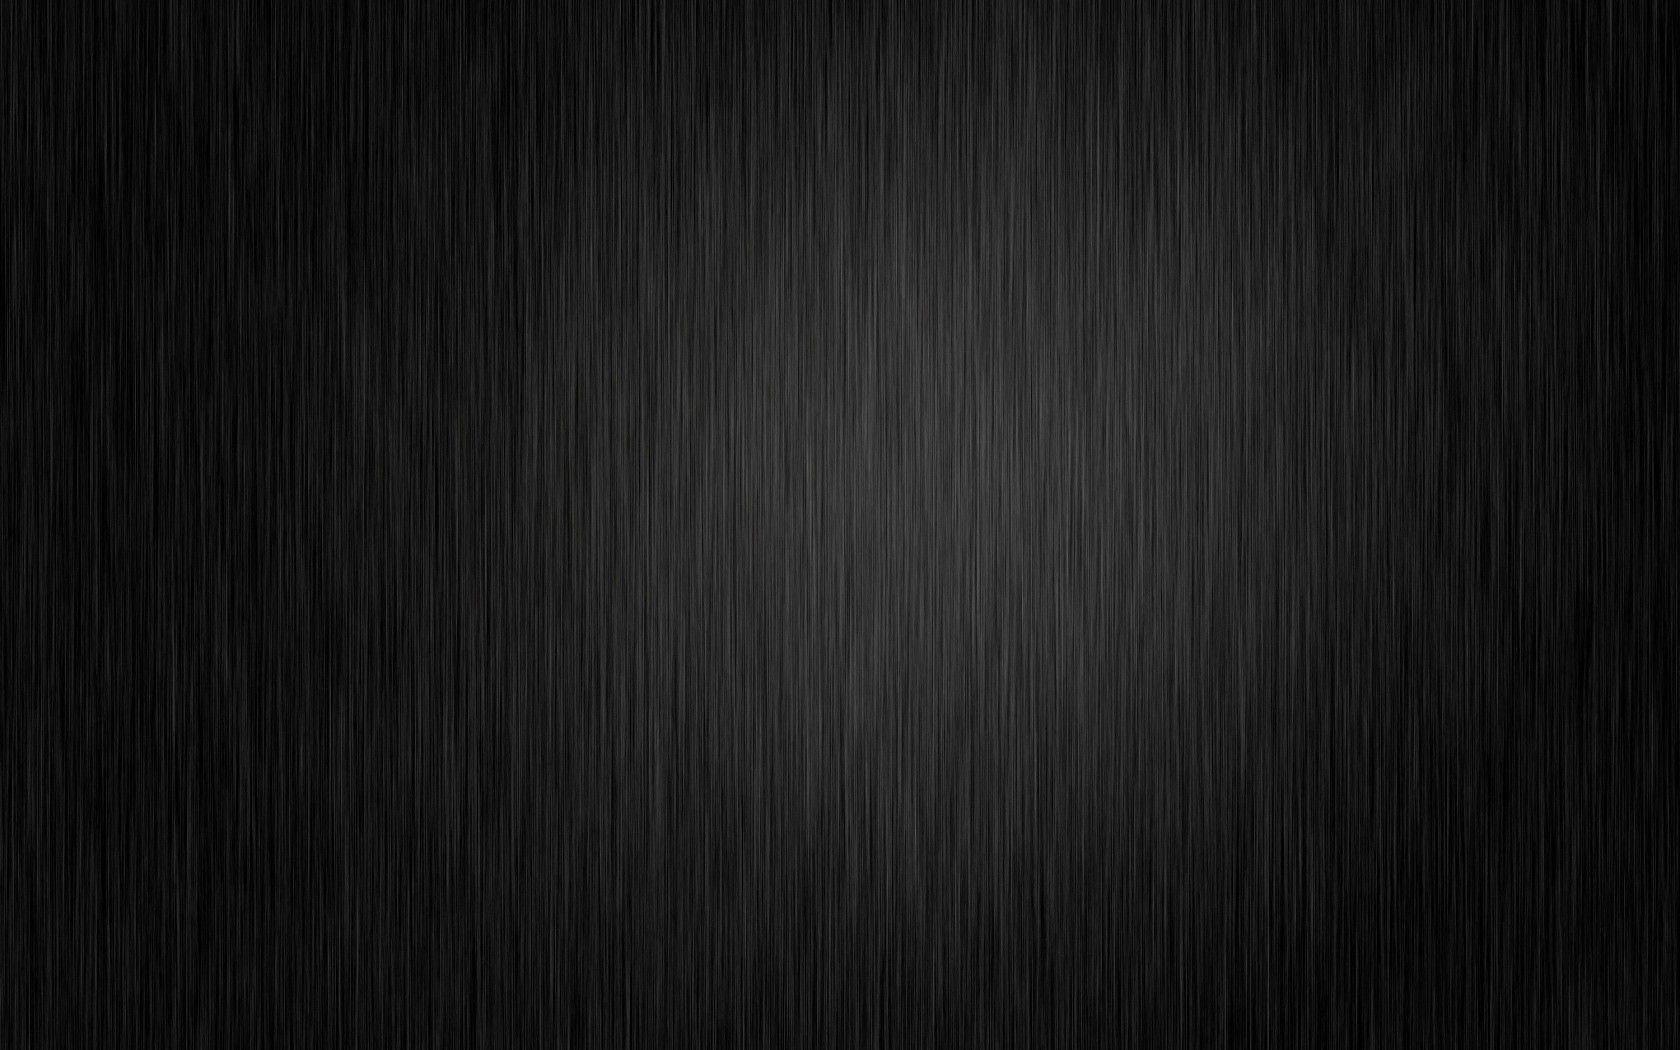 Black Metal Backgrounds   Wallpaper Cave. Black Metal Wallpapers   WallpaperSafari